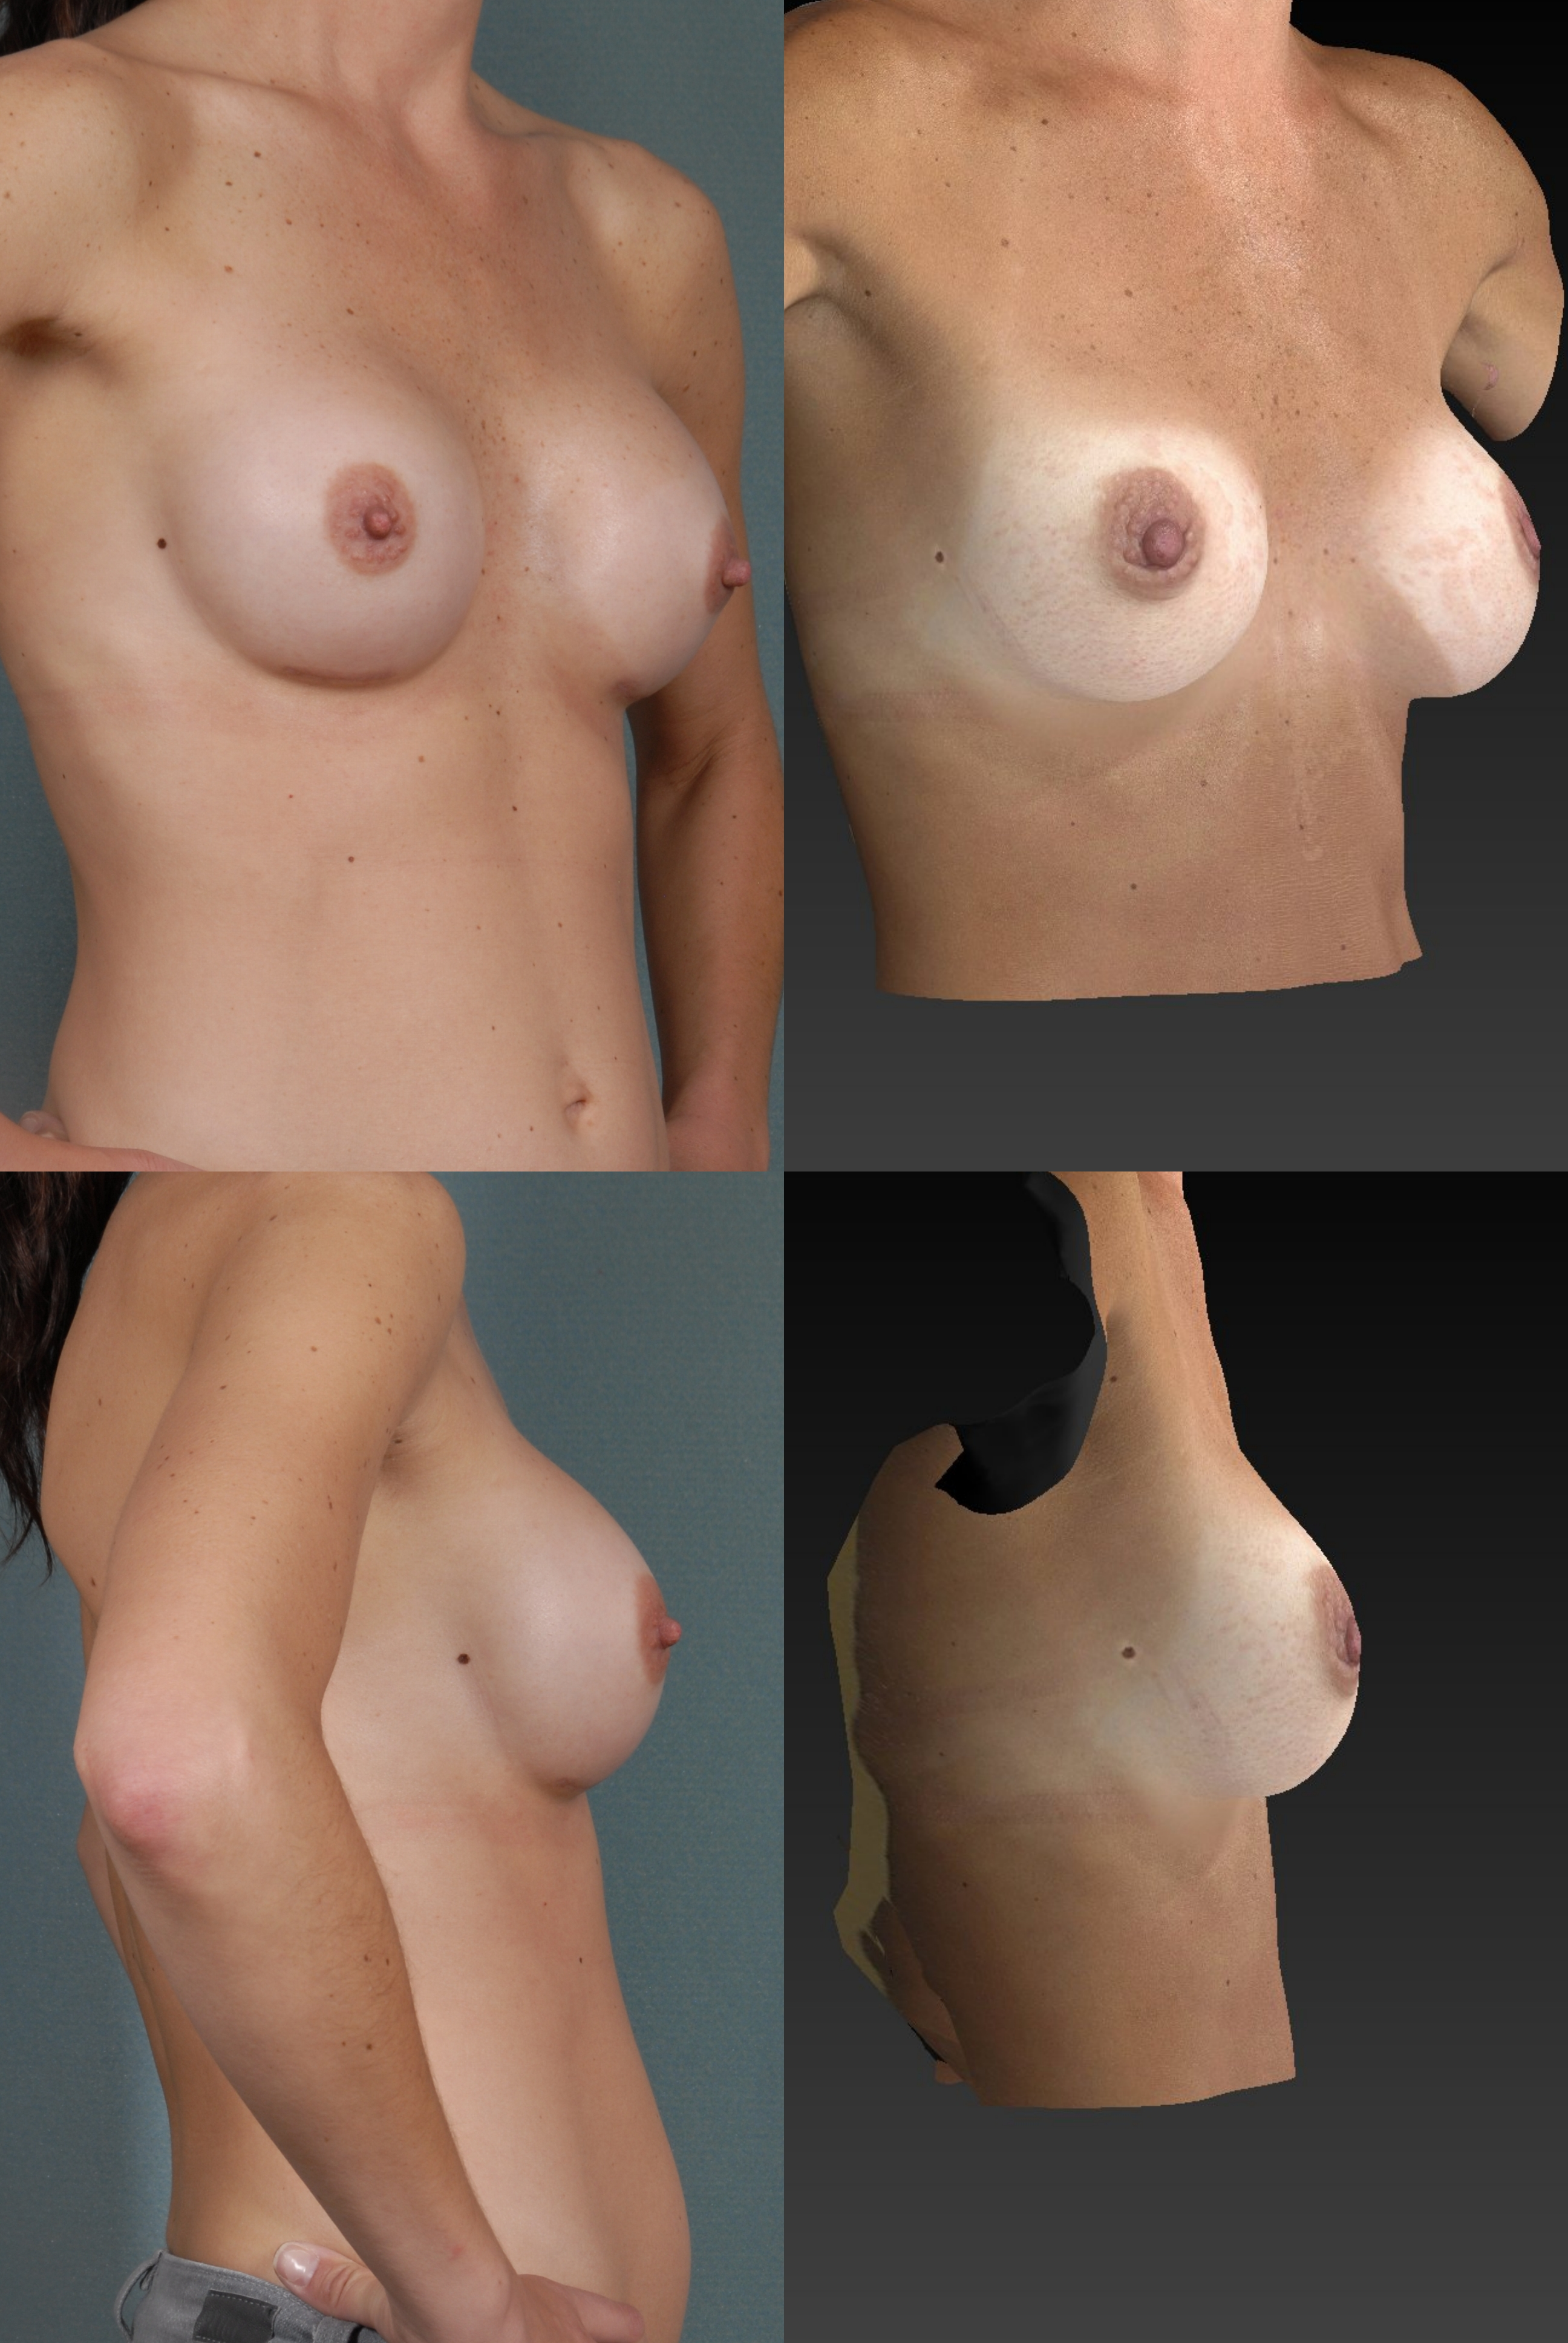 Denver breast augmentation 3D photo simulation